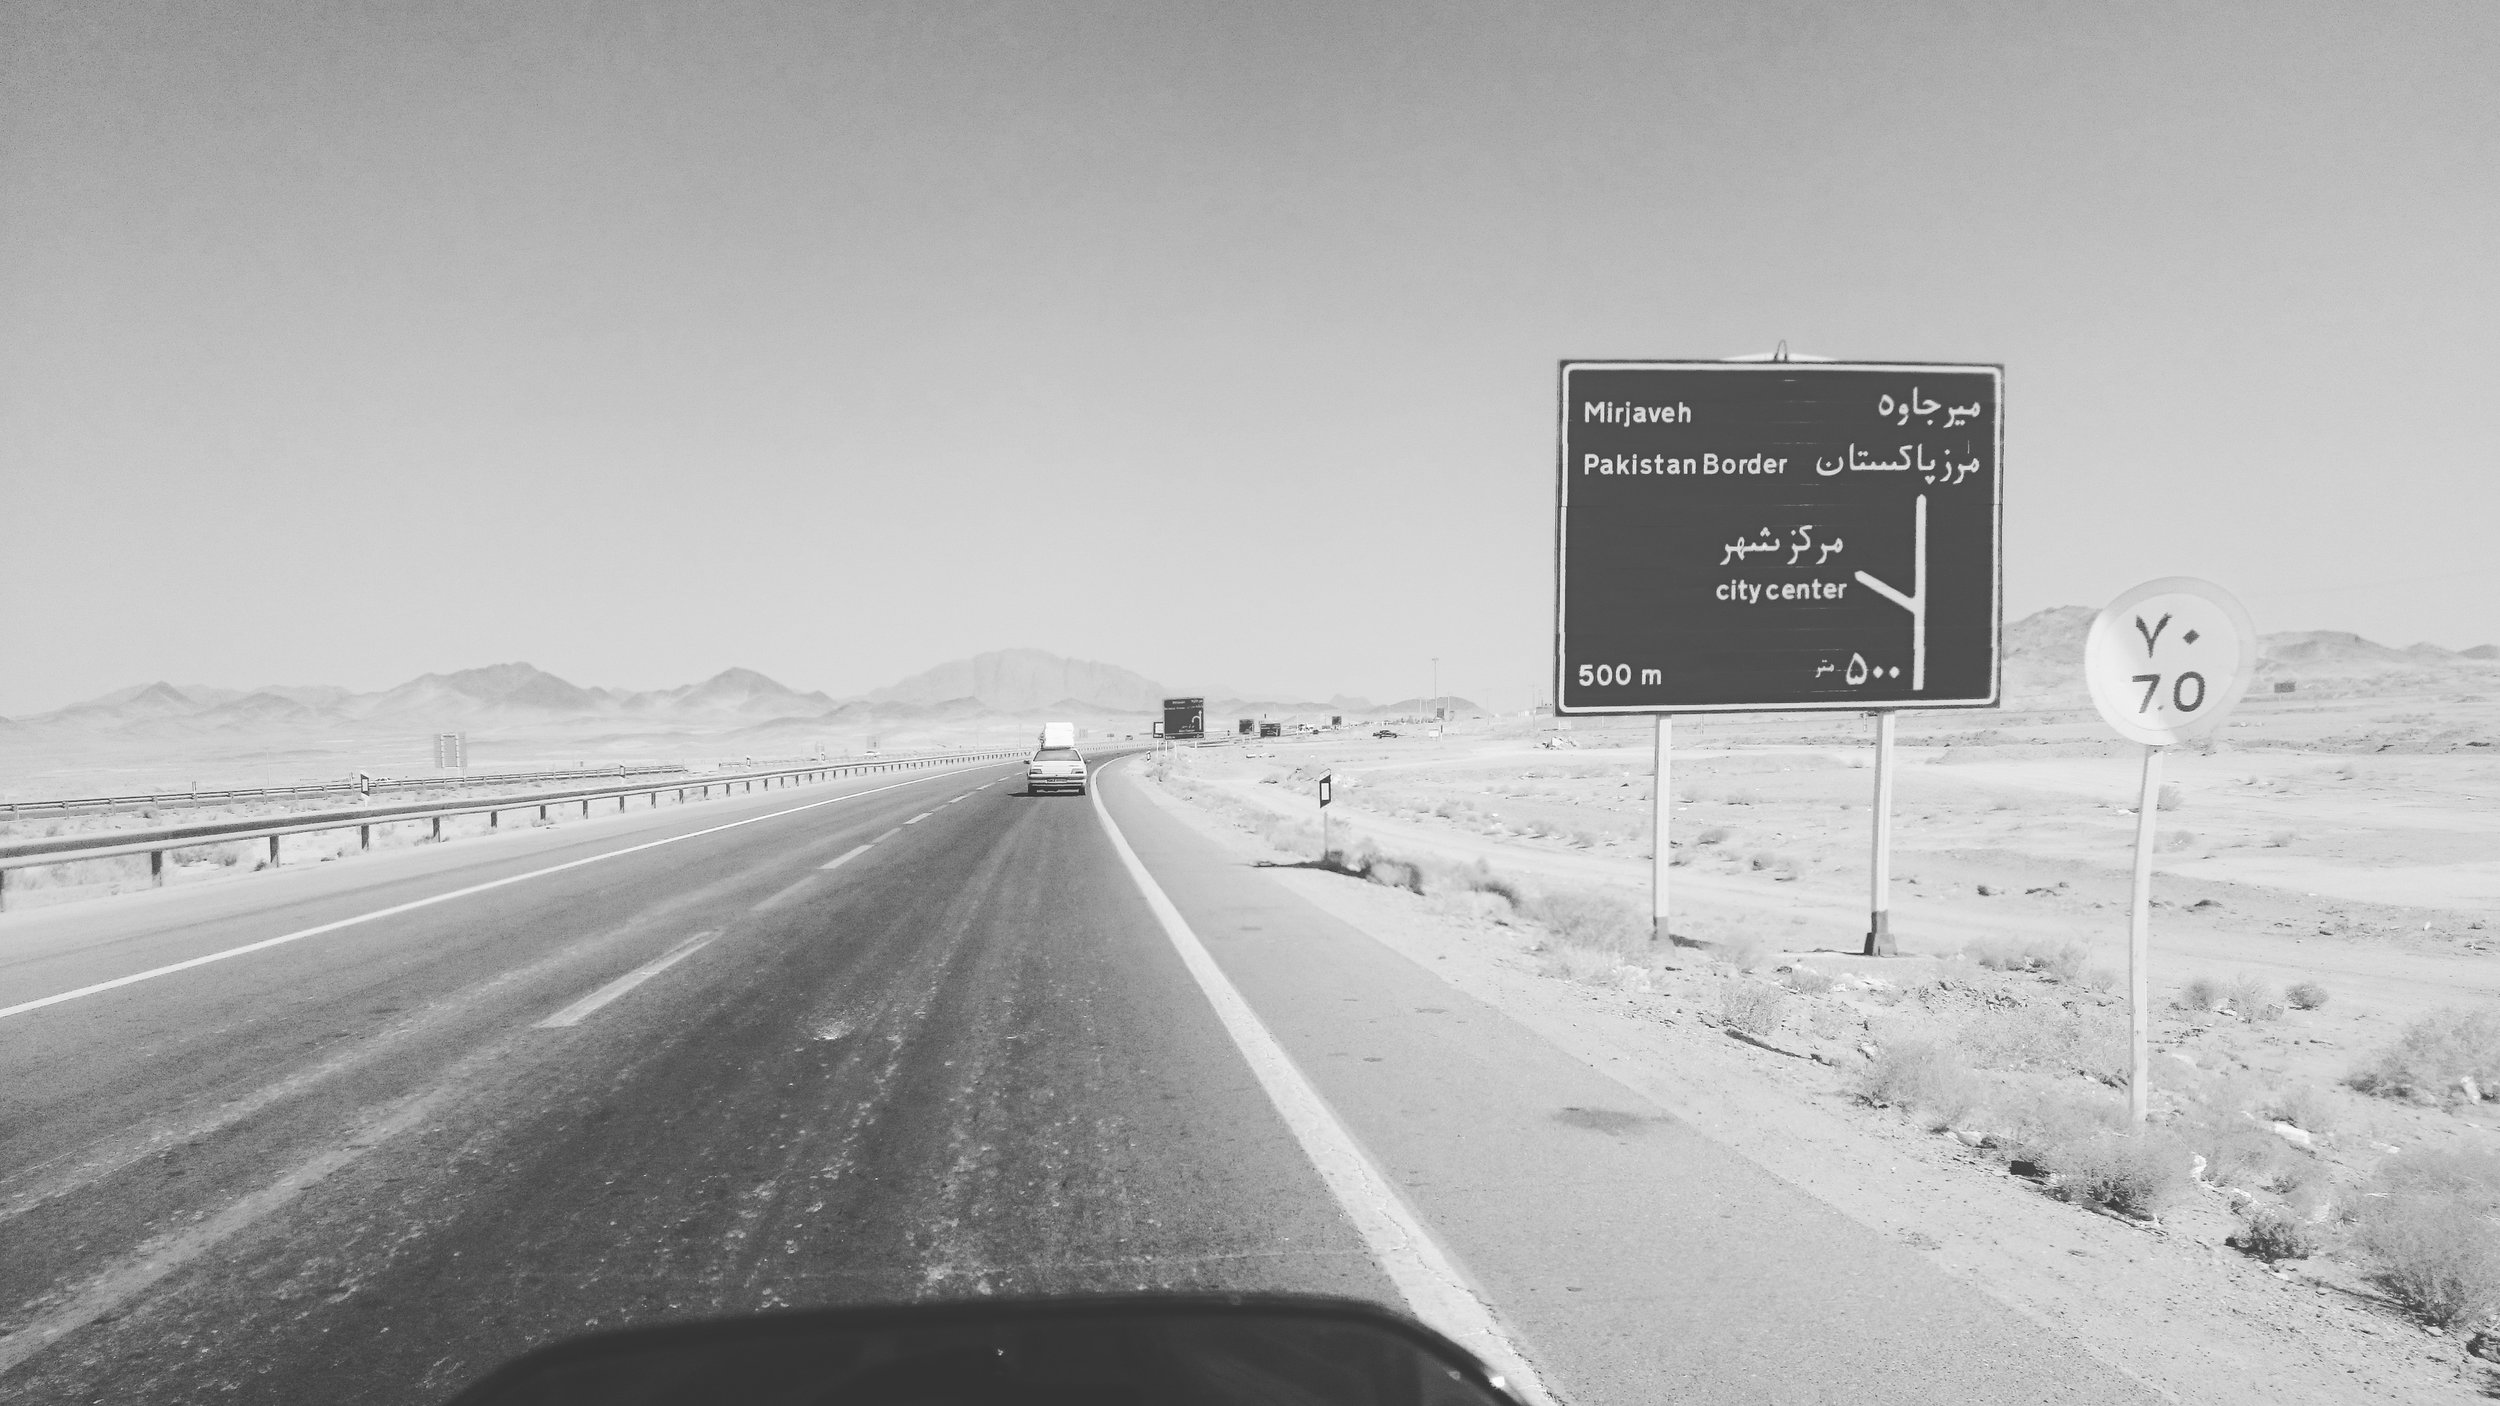 The last 15km to the border of Pakistan.